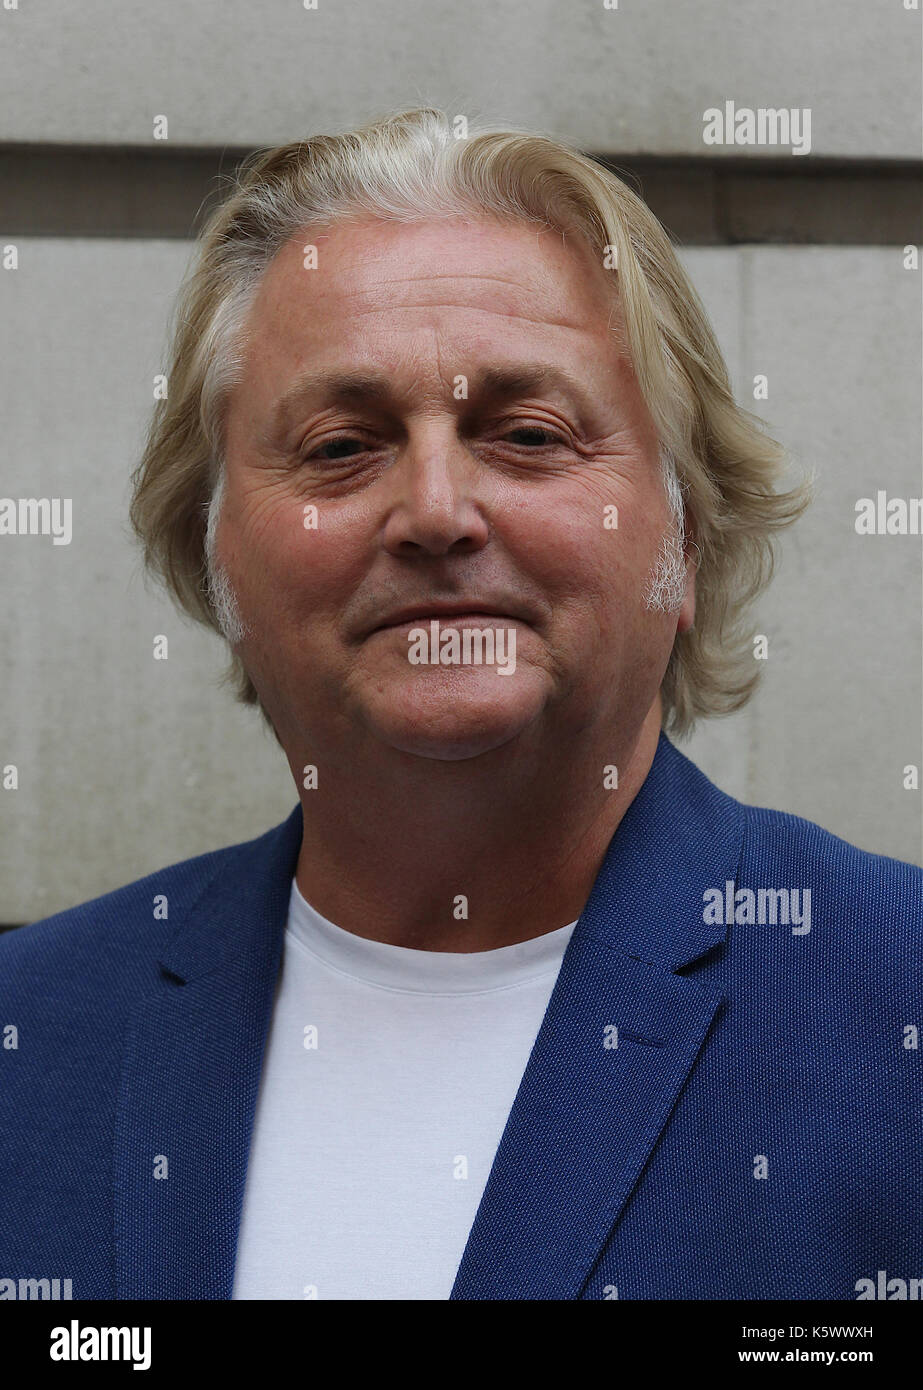 David Emanuel High Resolution Stock Photography And Images Alamy